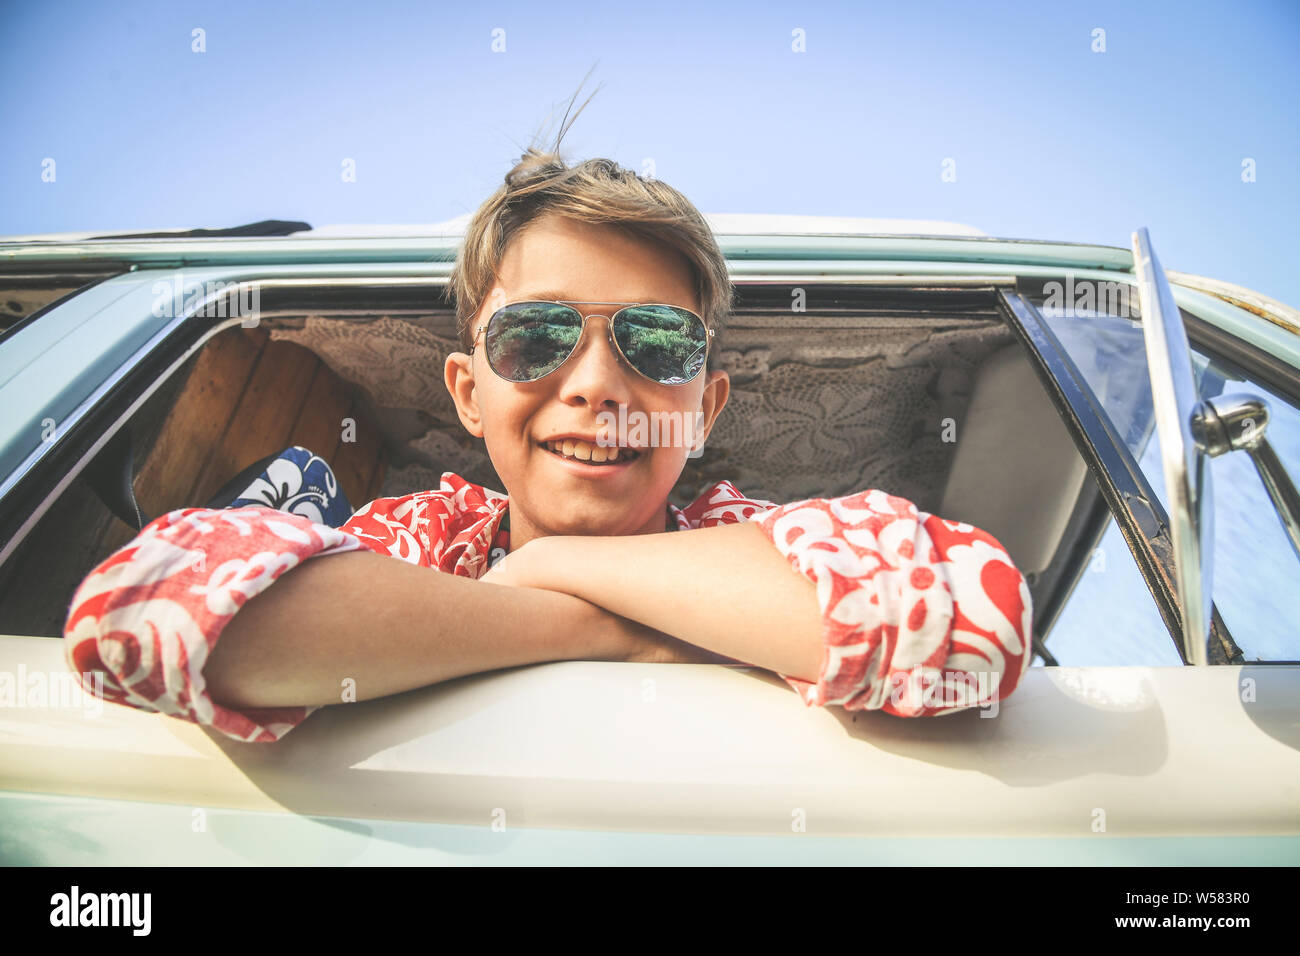 Bottom view of handsome boy with sunglasses posing charming out the window of the vintage van dressed as flower hippie child Concept of freedom and li Stock Photo